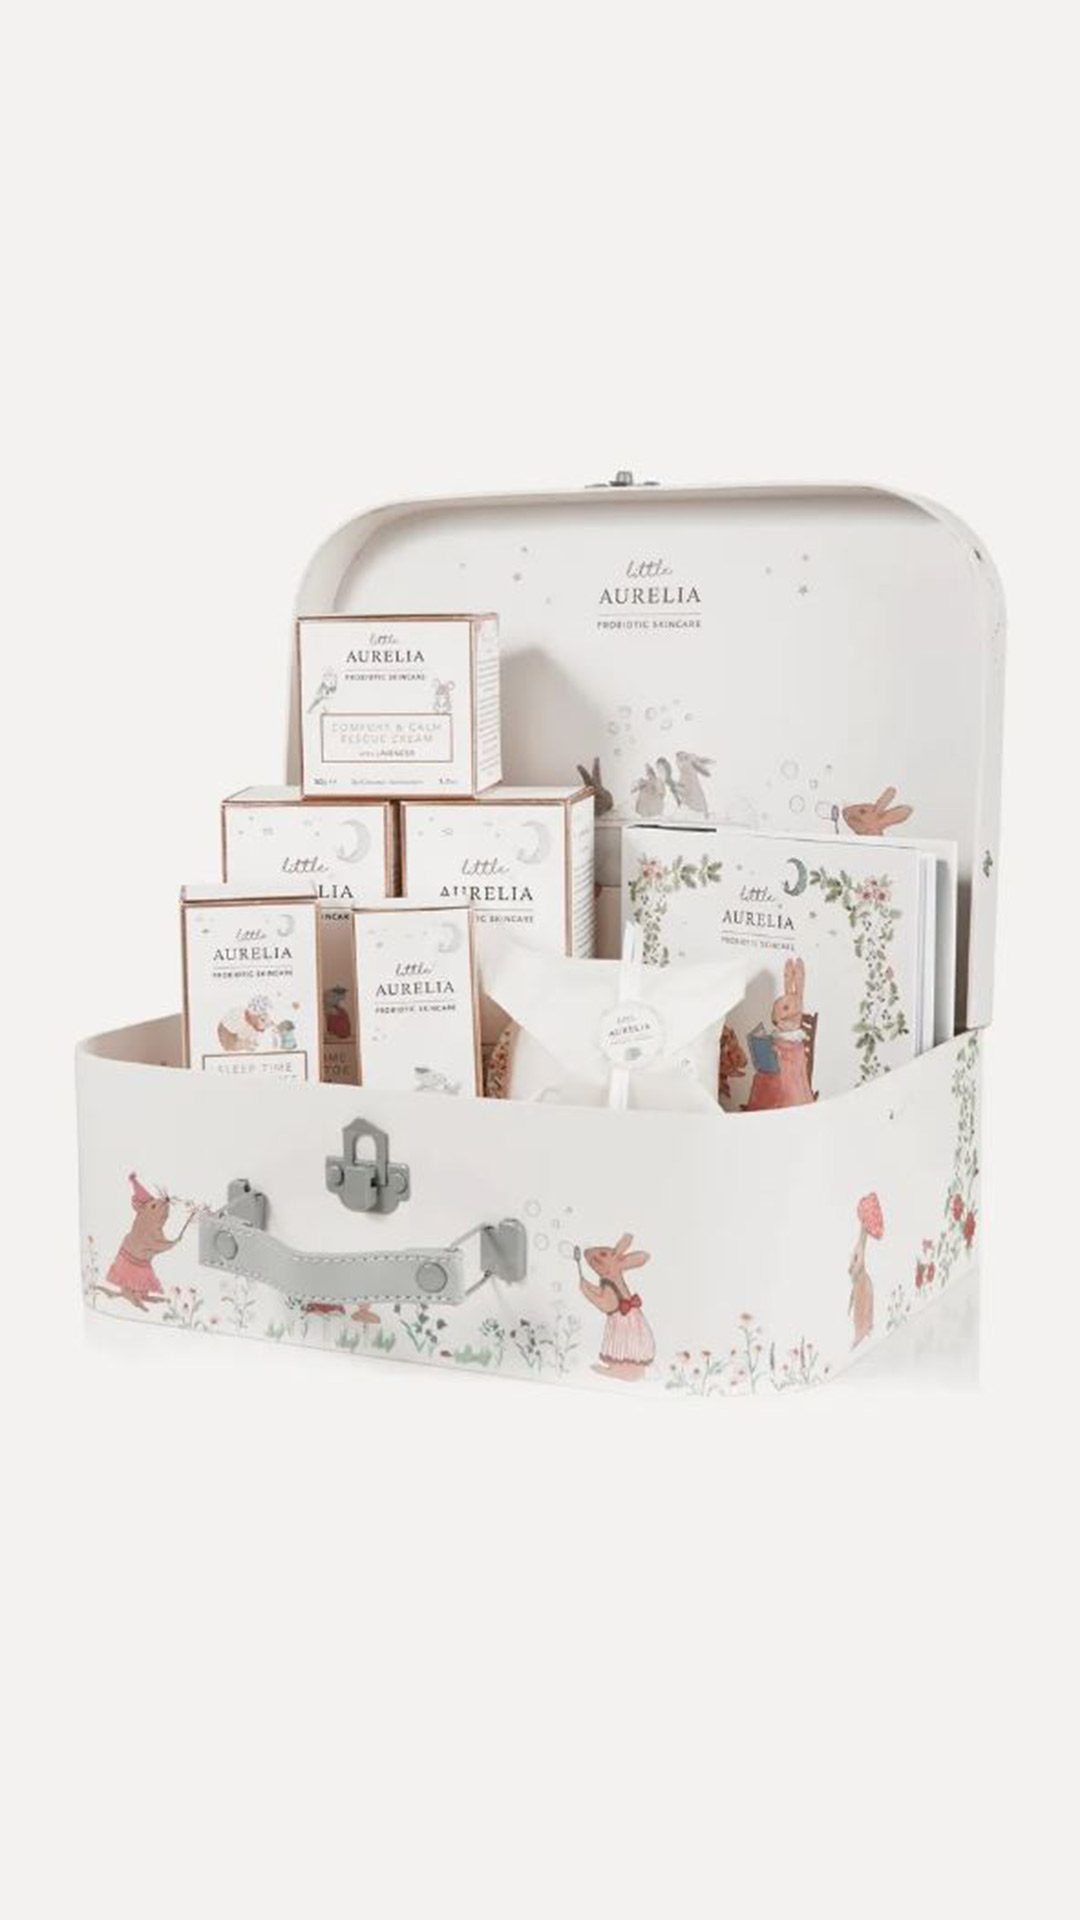 AURELIA PROBIOTIC SKINCARE + NET SUSTAIN Woodland Friends Gift Set